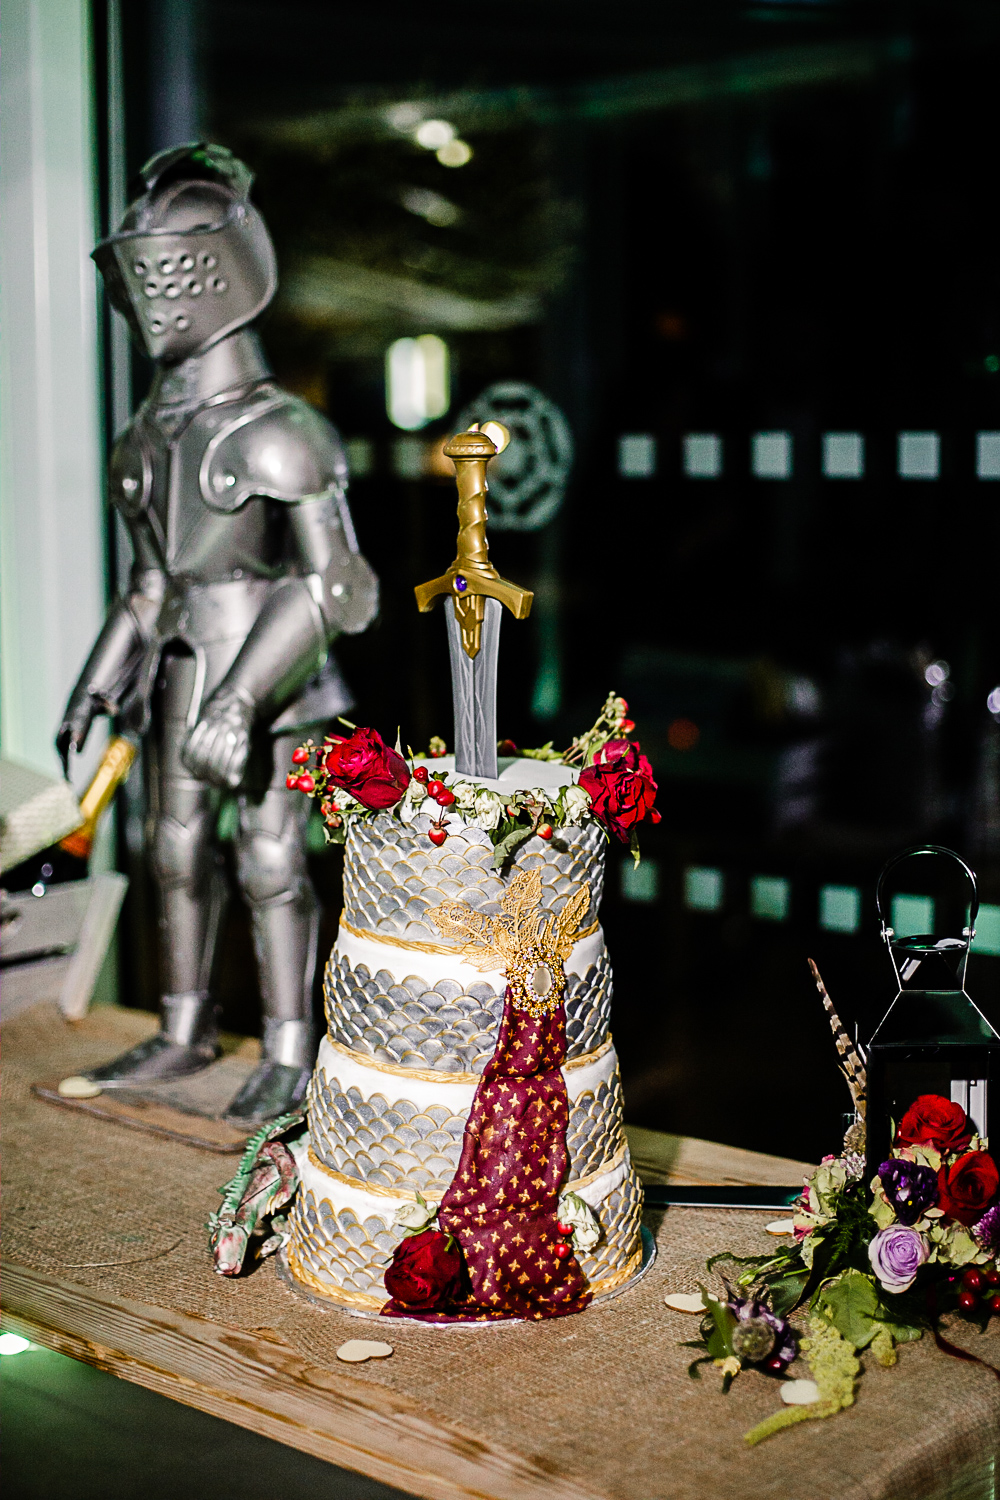 Tudor Barn Belstead Wedding Photographer - Cake cutting - Game of Thrones Theme